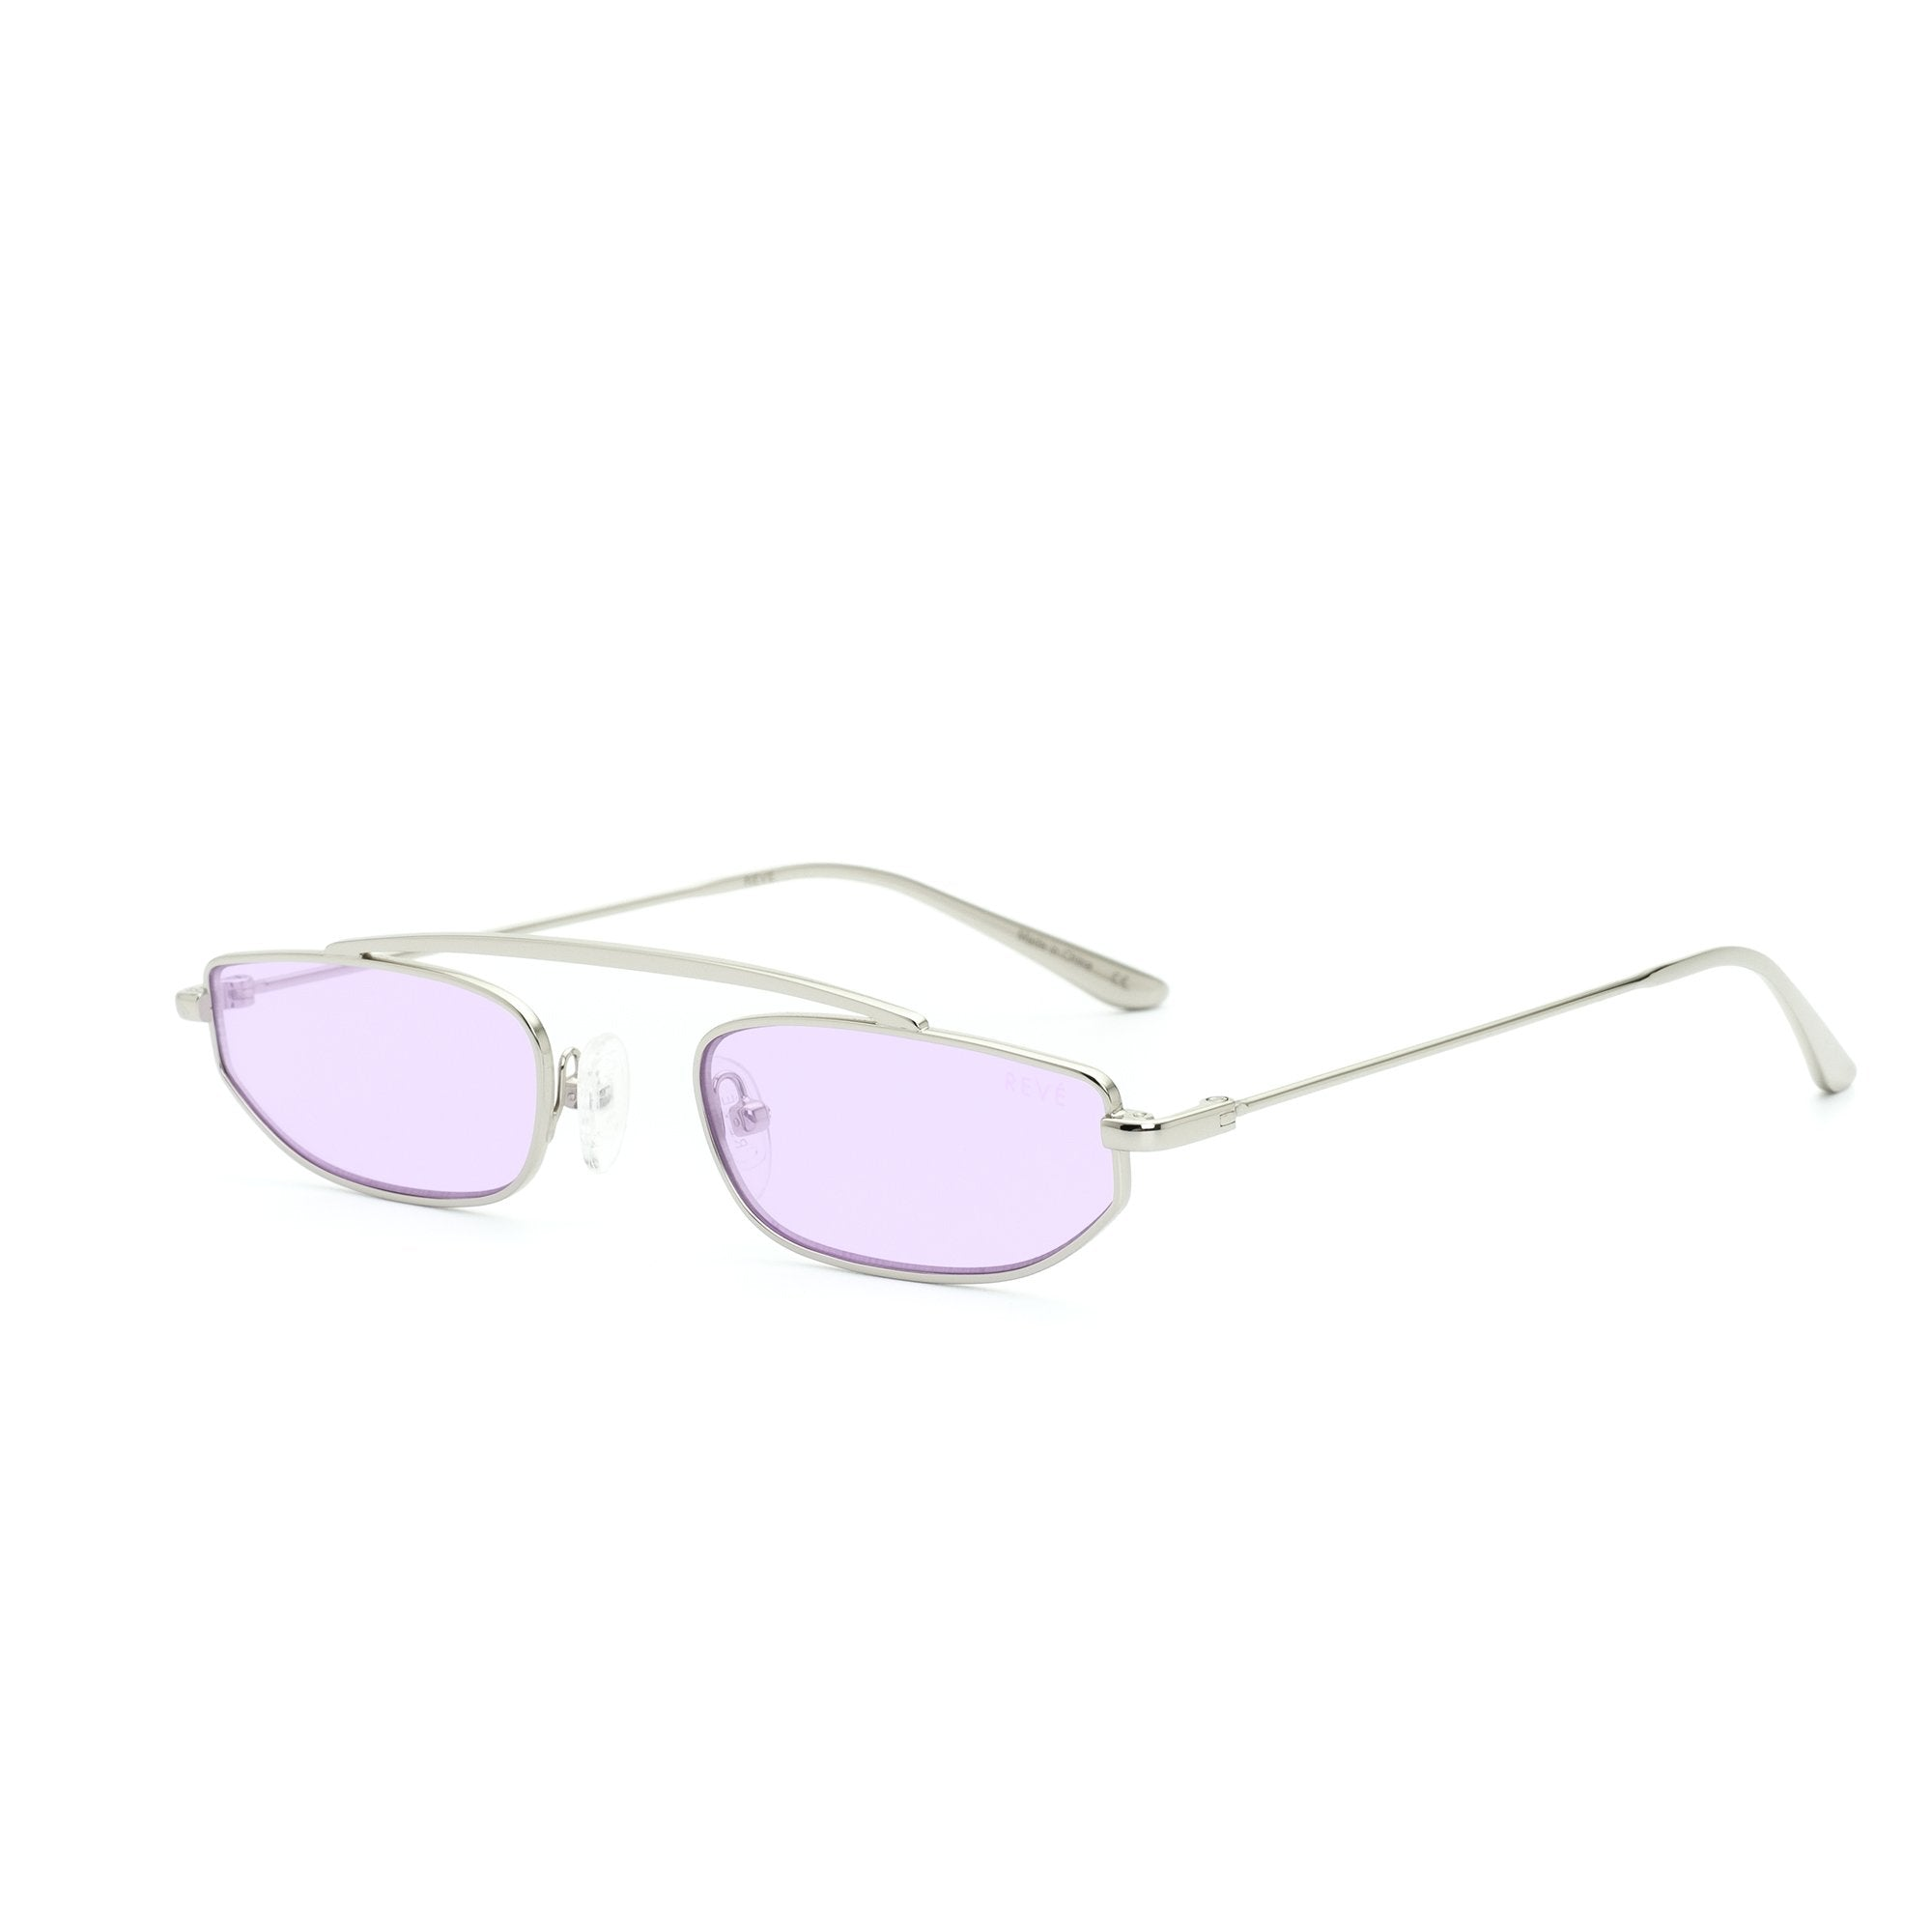 REVE by RENE peppy sunglasses | purple sunglasses